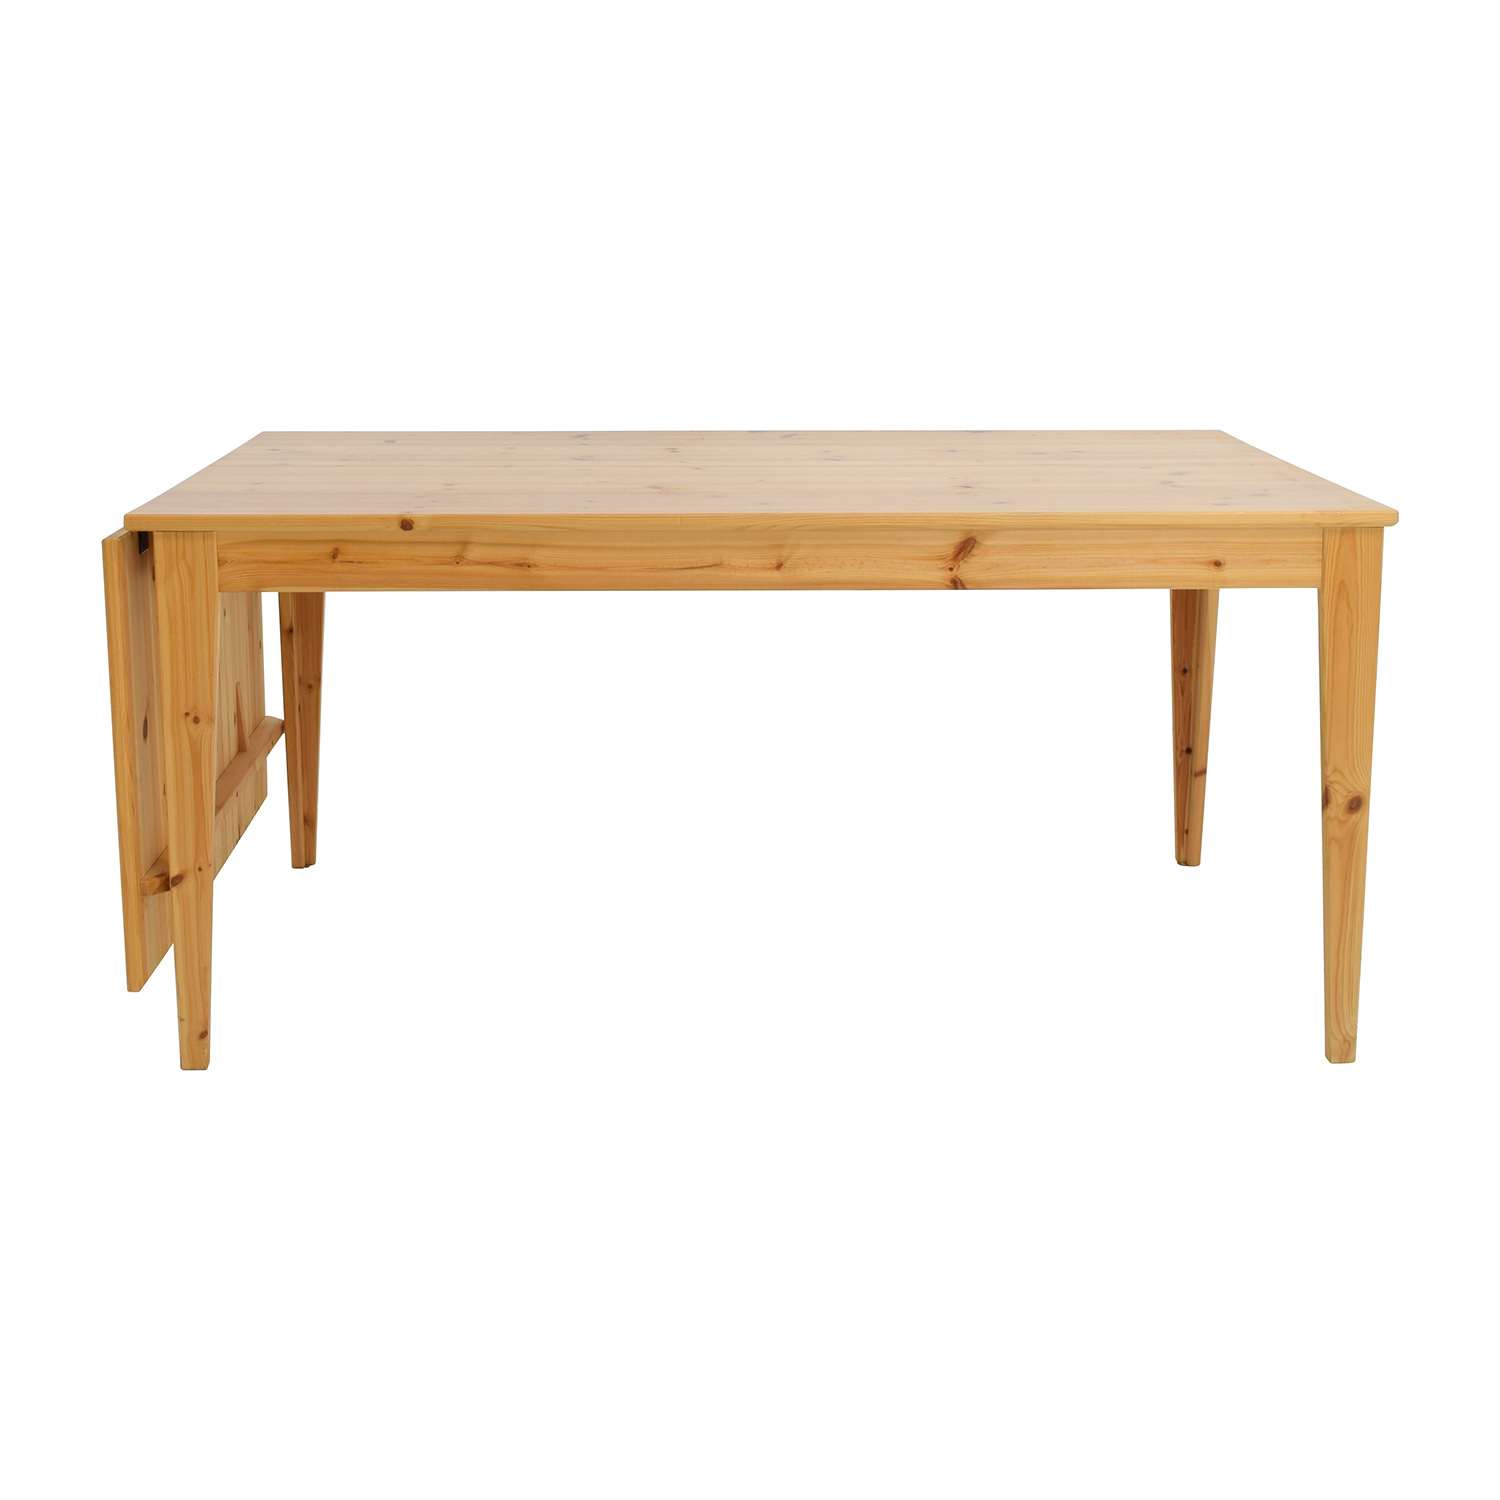 Ikea pine wood coffee table rascalartsnyc for Pine desk ikea